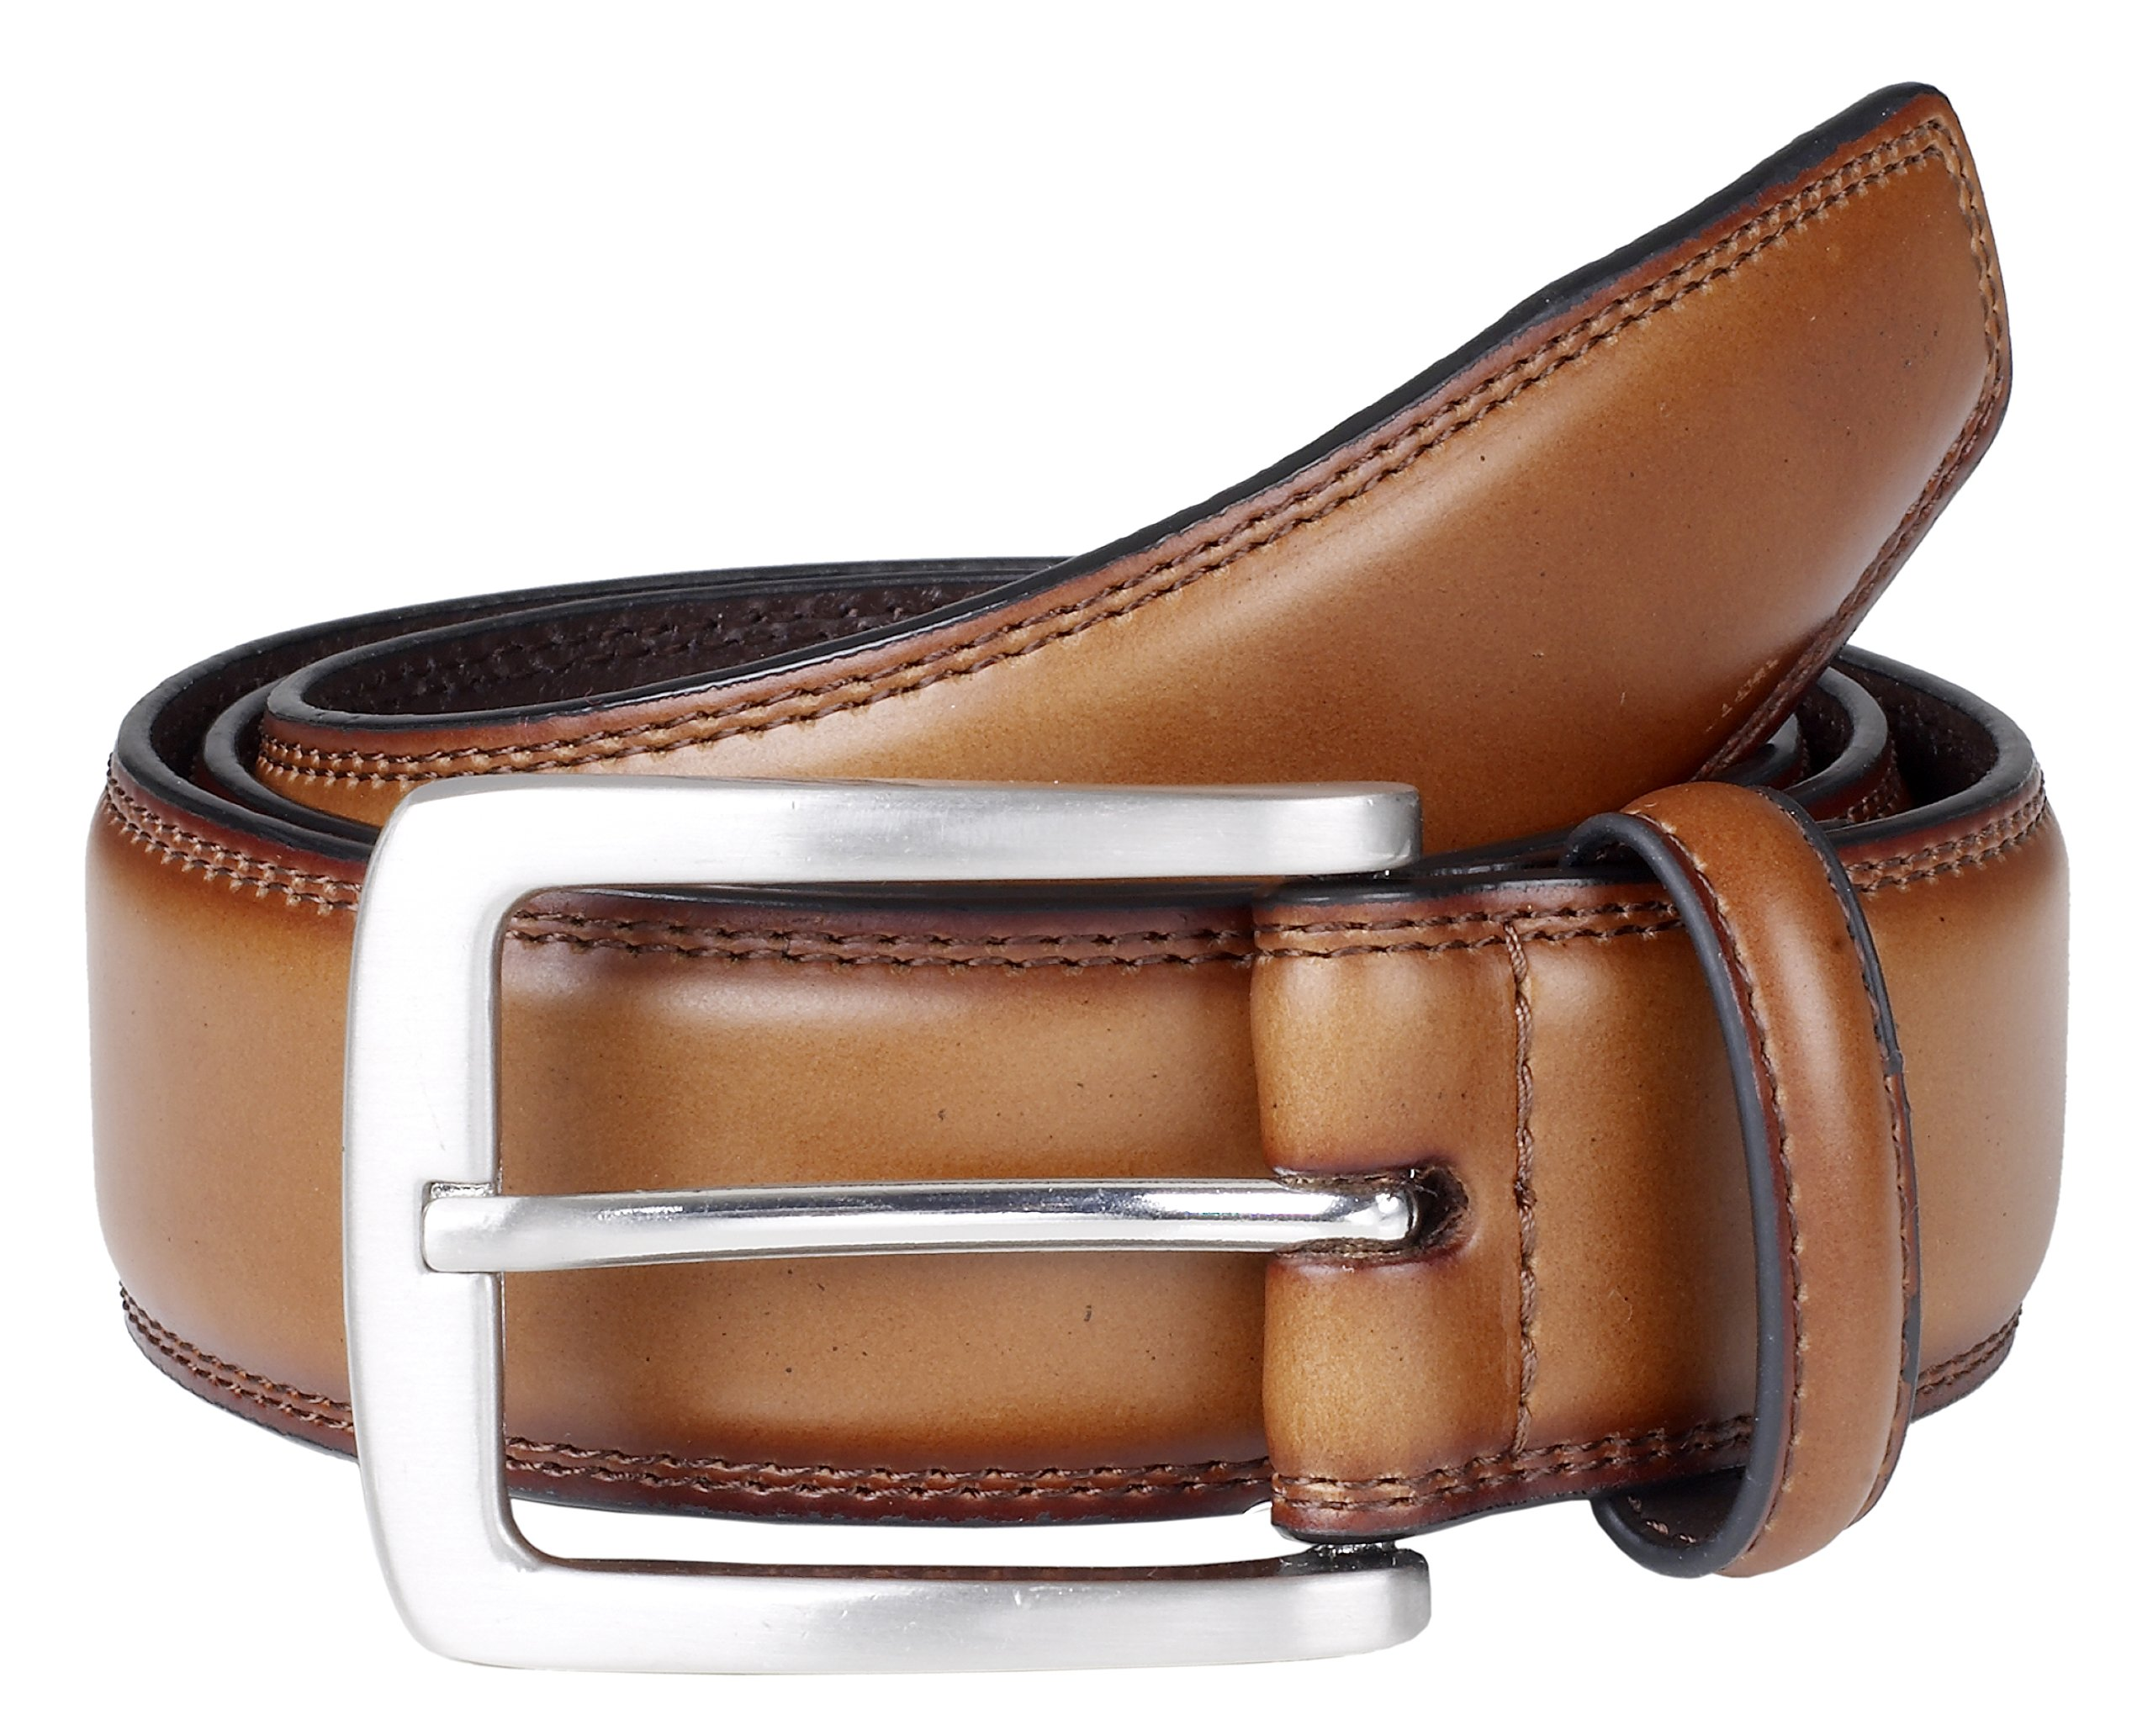 Sportoli Mens Genuine Leather Classic Stitched Casual Belt - Whiskey (Size 36)